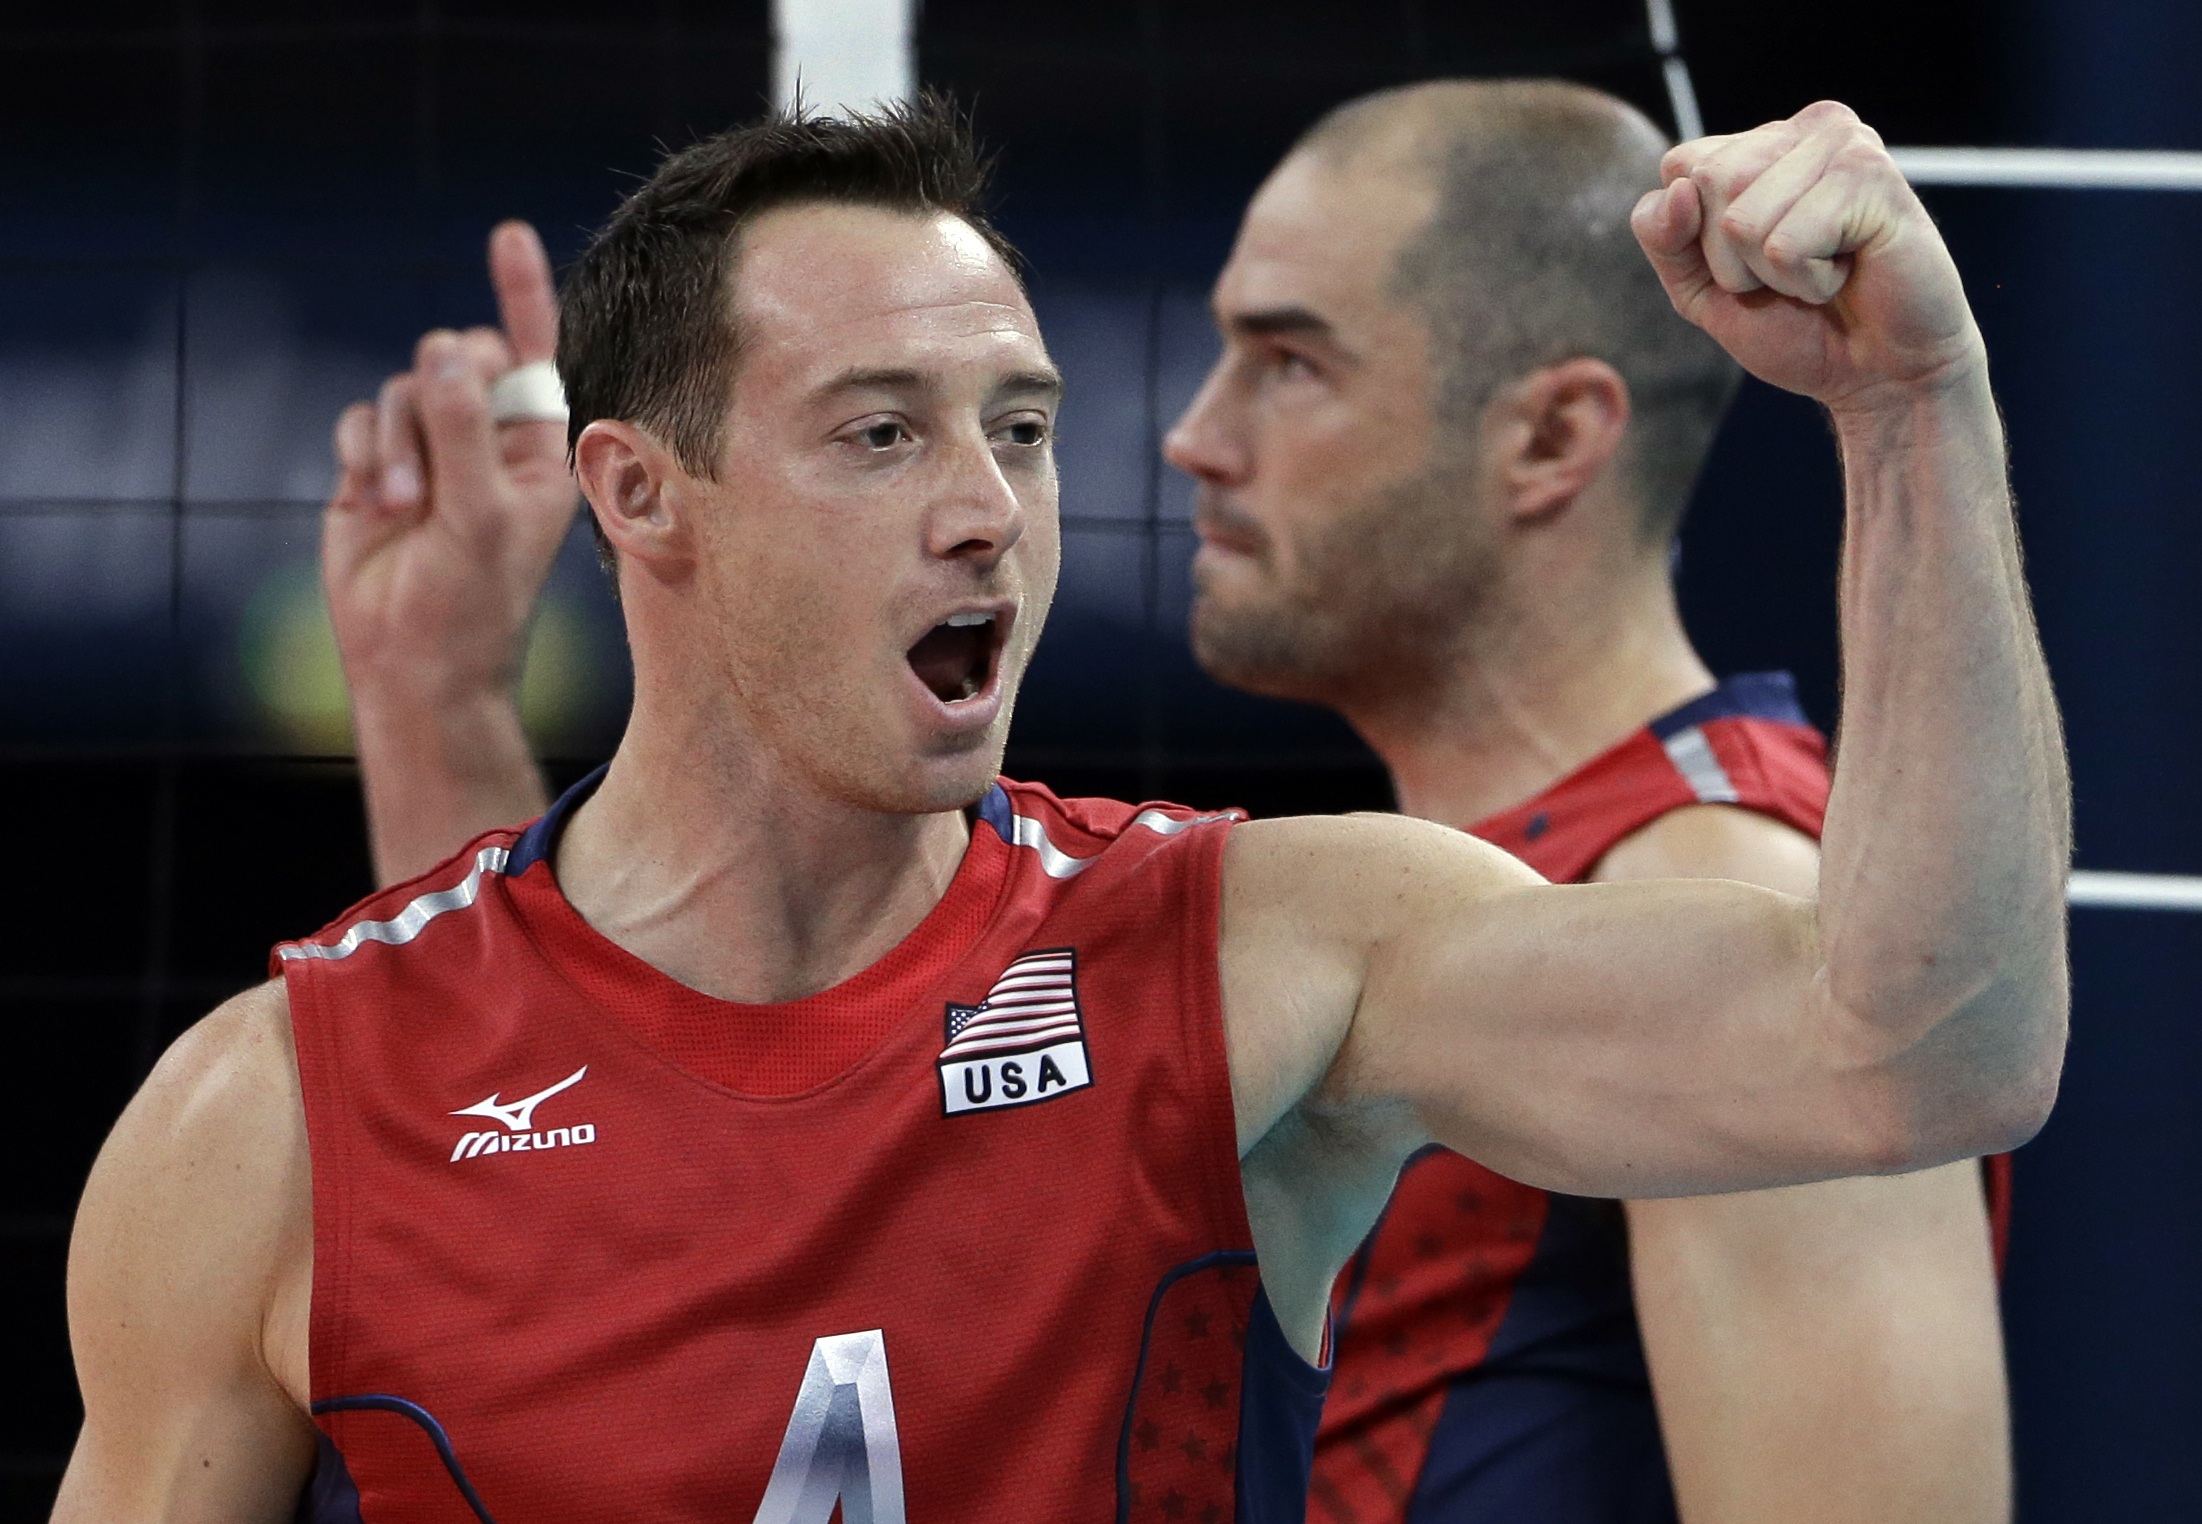 FILE - In this Aug. 4, 2012, file photo, David Lee, of the United States, front, and teammate Clayton Stanley celebrate during a men's preliminary volleyball match against Russia at the 2012 Summer Olympics,  in London. Lee debated whether to even march i